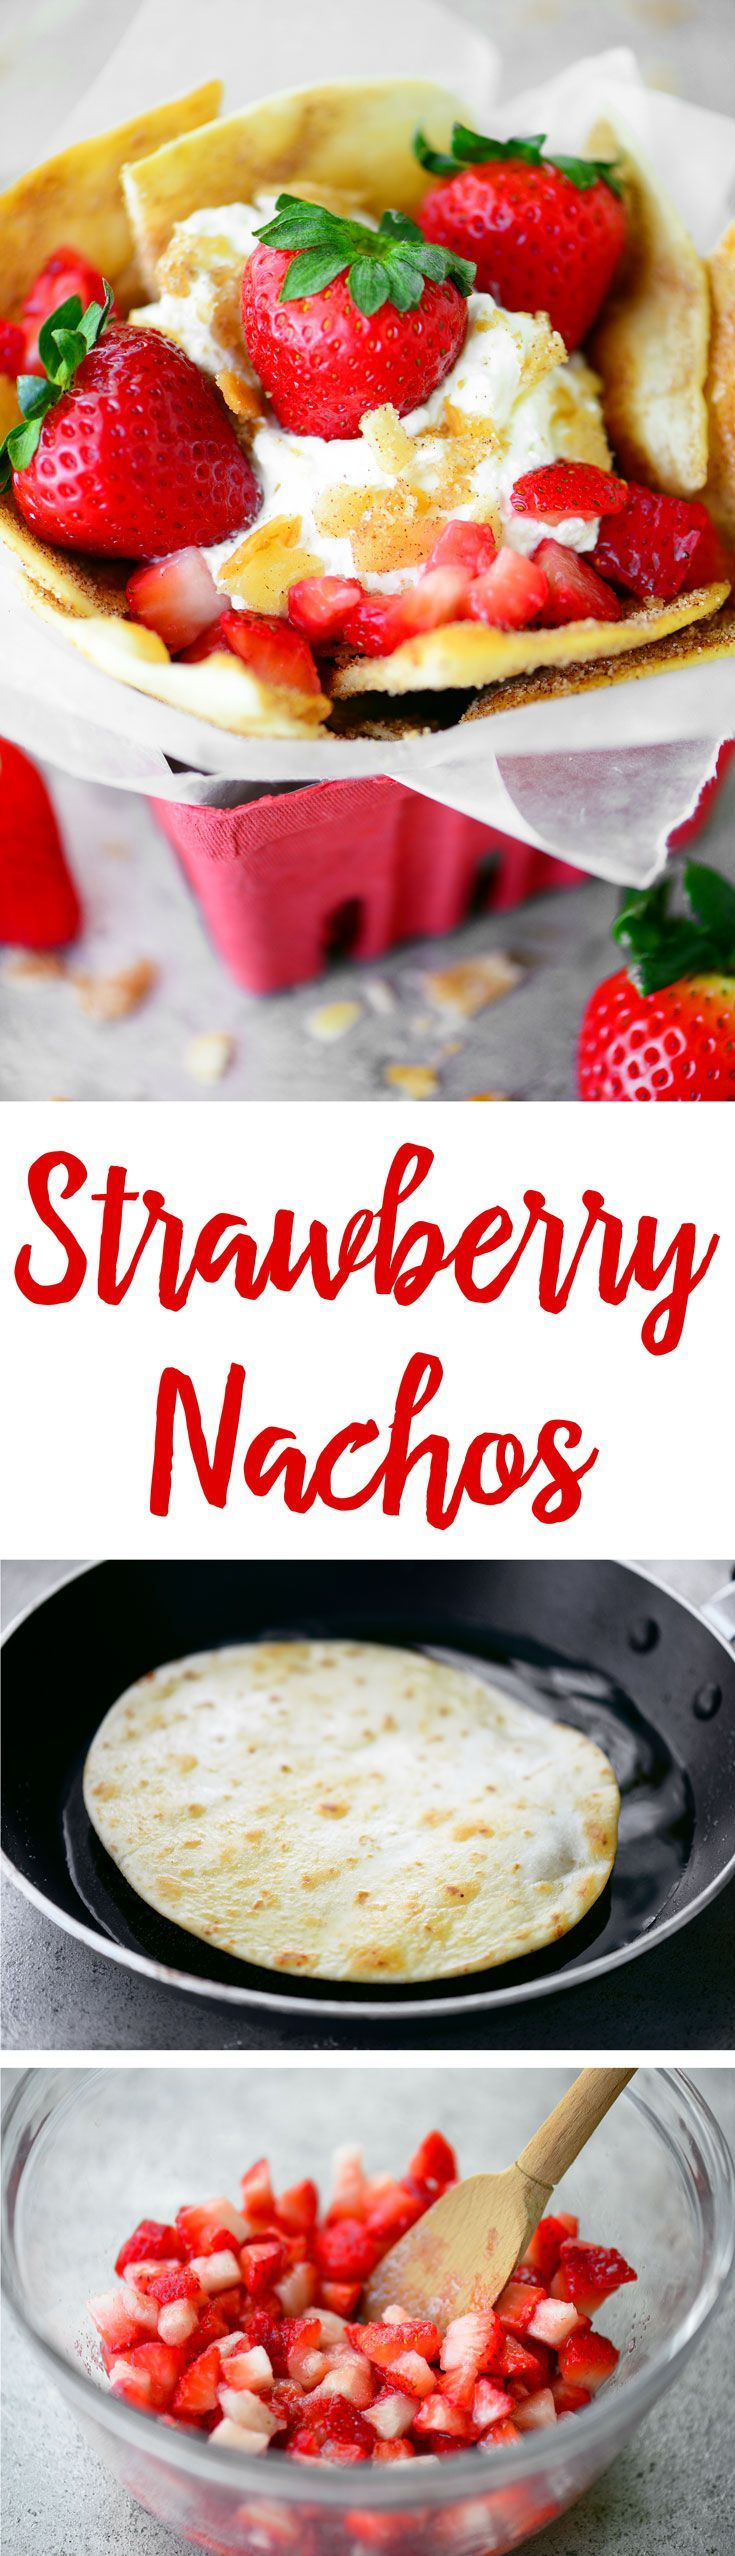 This easy Strawberry Nachos recipe with crispy cinnamon sugar tortilla chips, whipped cream, and juicy strawberries is the most delicious summer dessert!